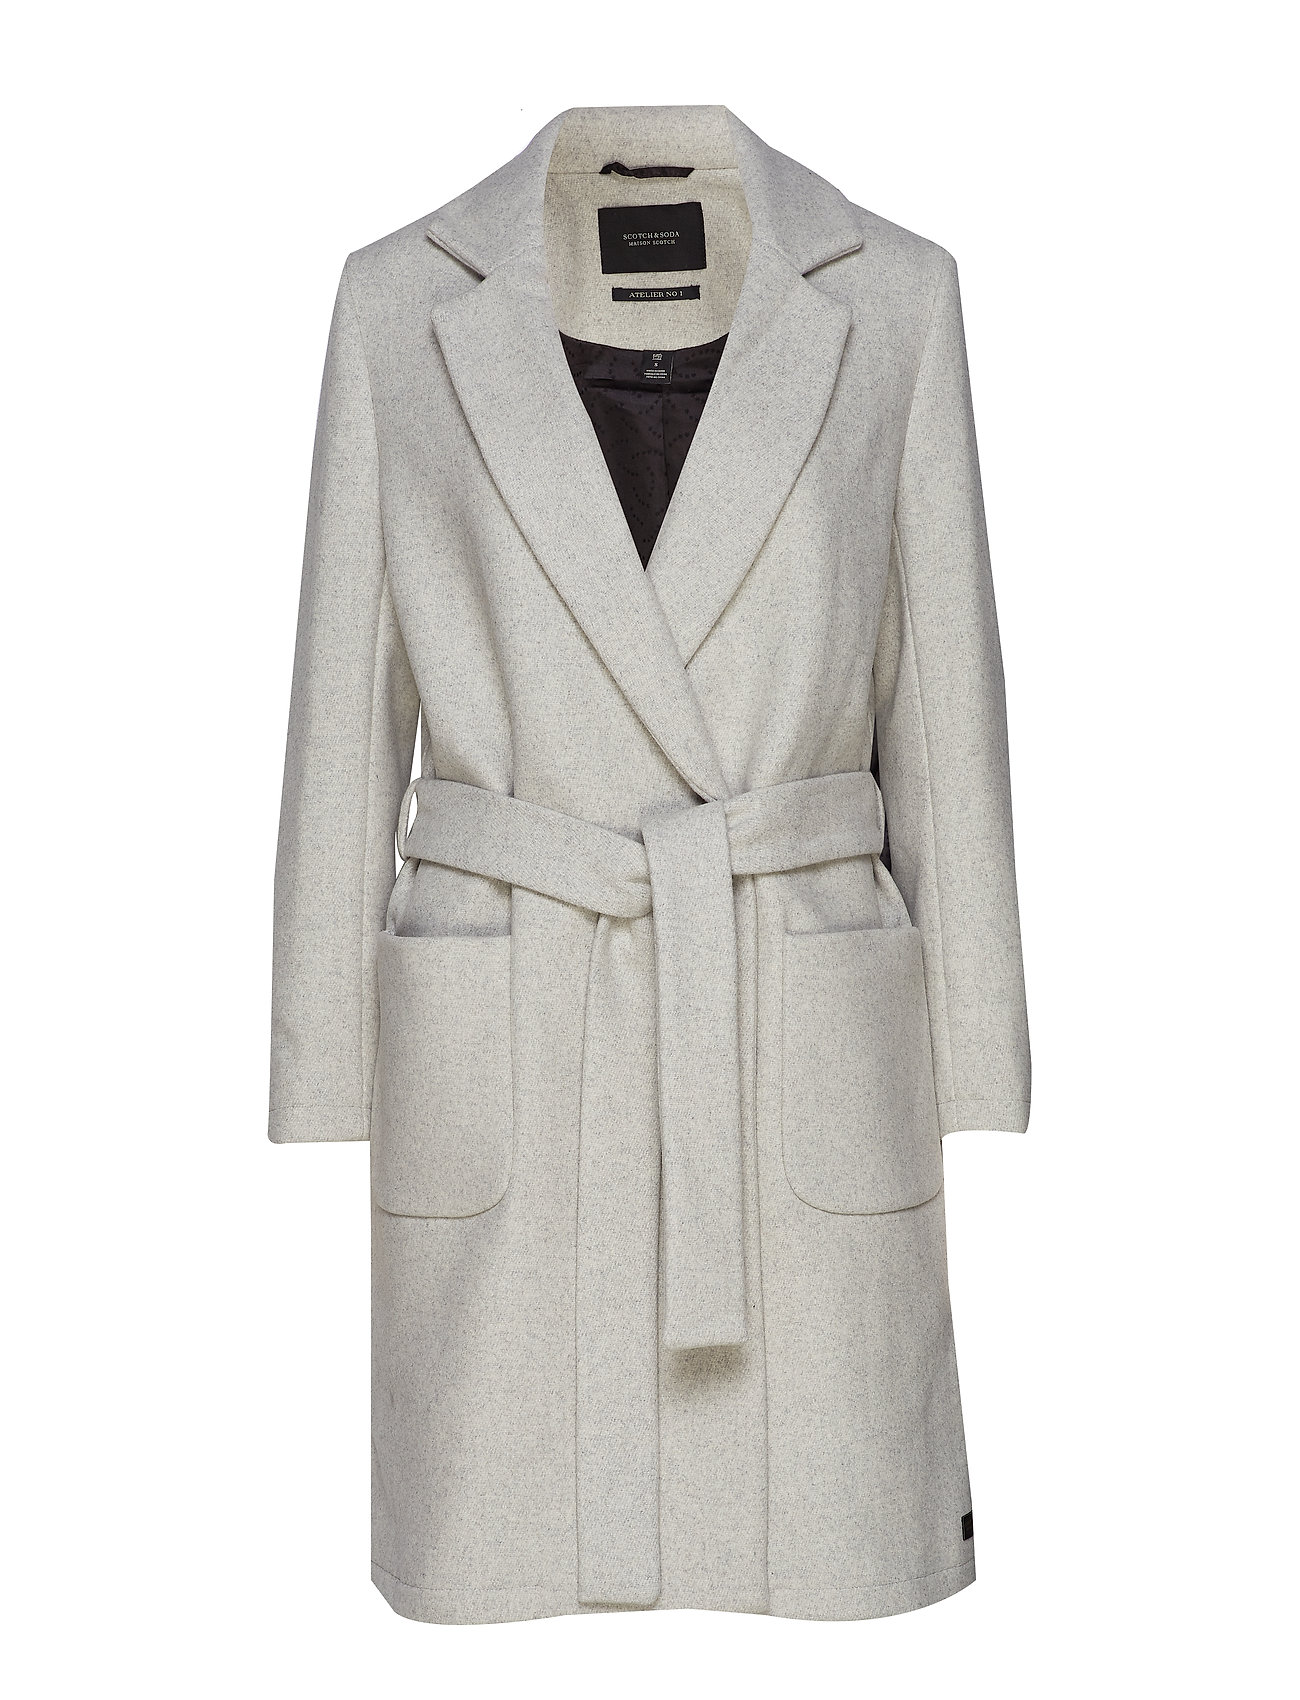 Scotch & Soda Wool wrap coat with belt - GREY MELANGE